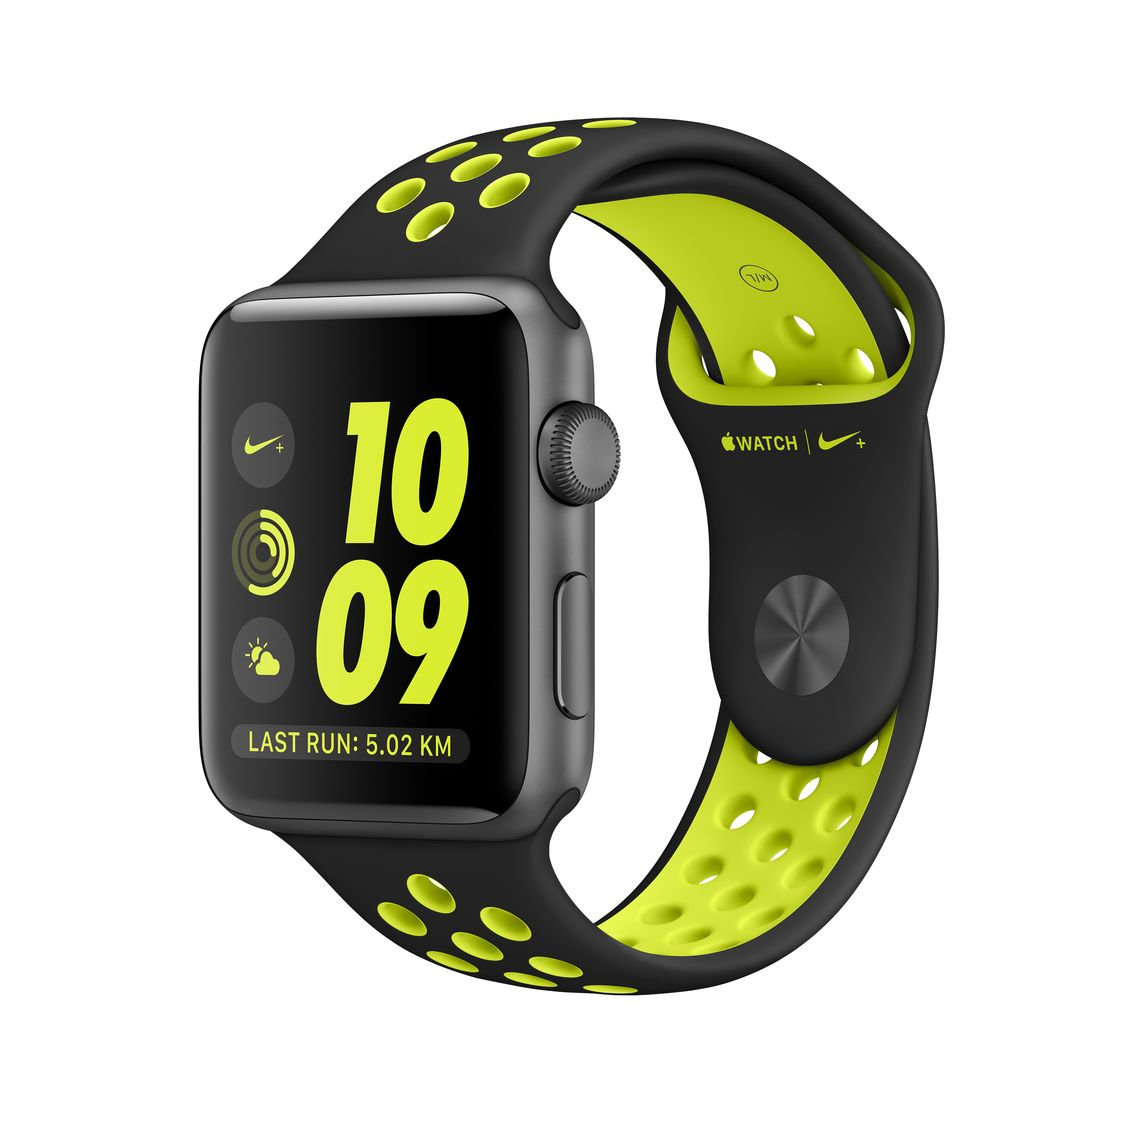 Refurbished Apple Watch Nike+ Series 2, 42mm Space Gray Aluminum Case with  Black / Volt Nike Sport Band